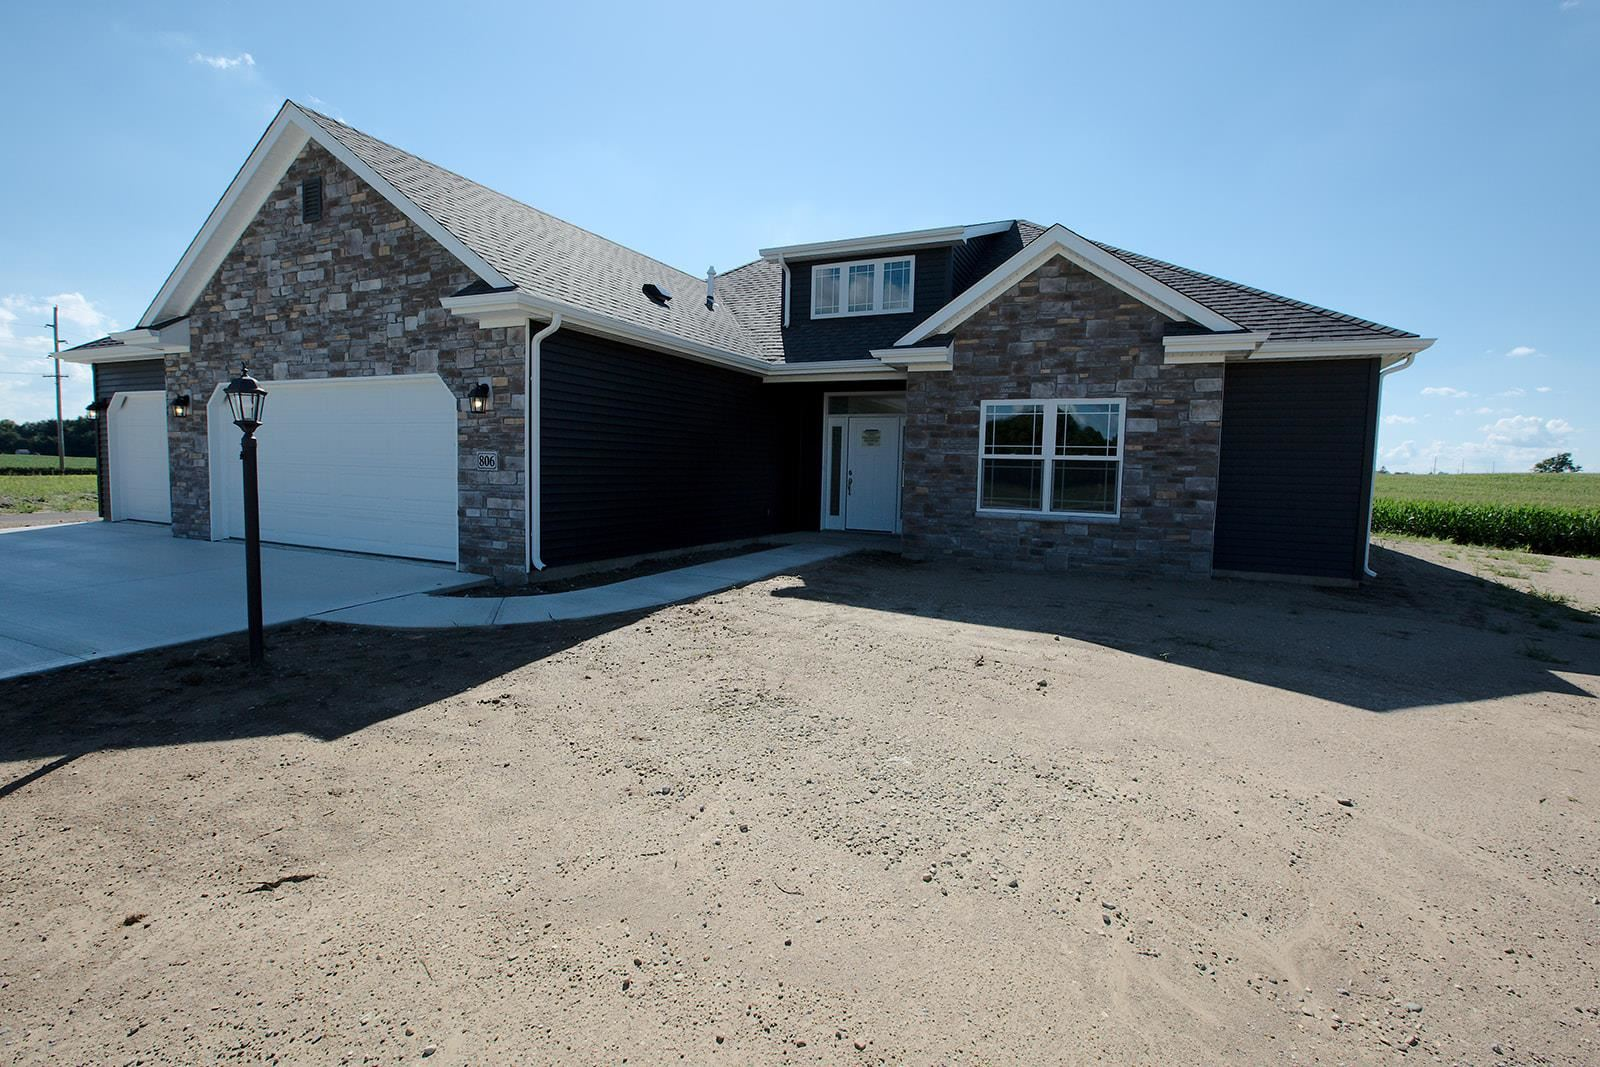 Photo of 806 Marshall Way, North Manchester, IN 46962 (MLS # 202005806)